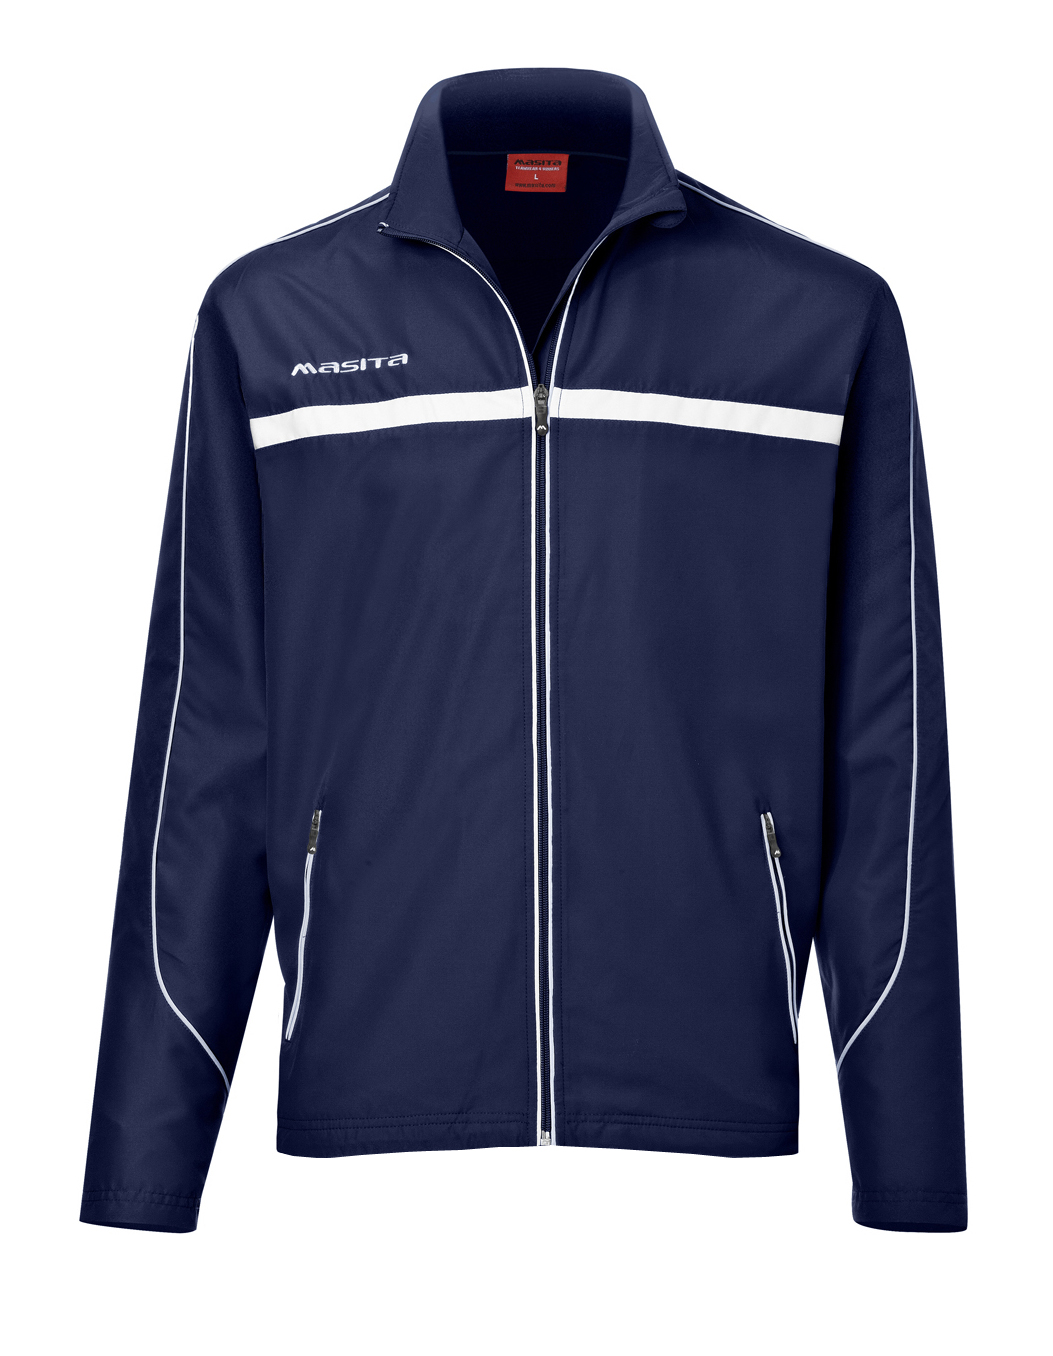 Presentation Jacket Brasil  Navy Blue / White